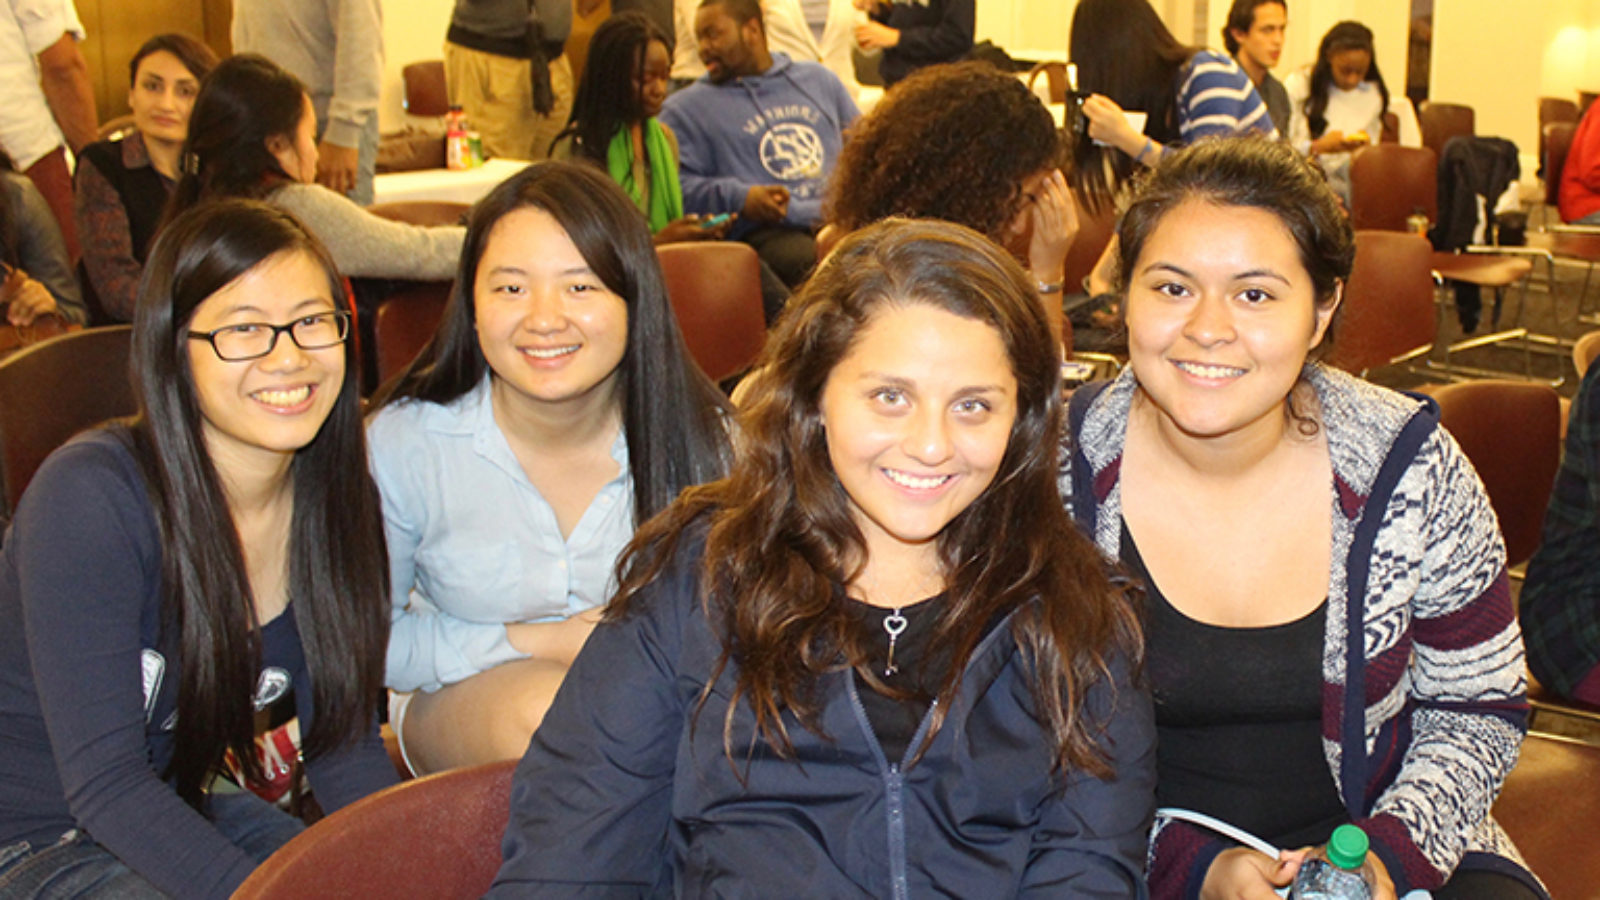 Students Florence Kong, Yingyu Ren, Angie Molina (C'18) and Jessica Andino sit together at an event.